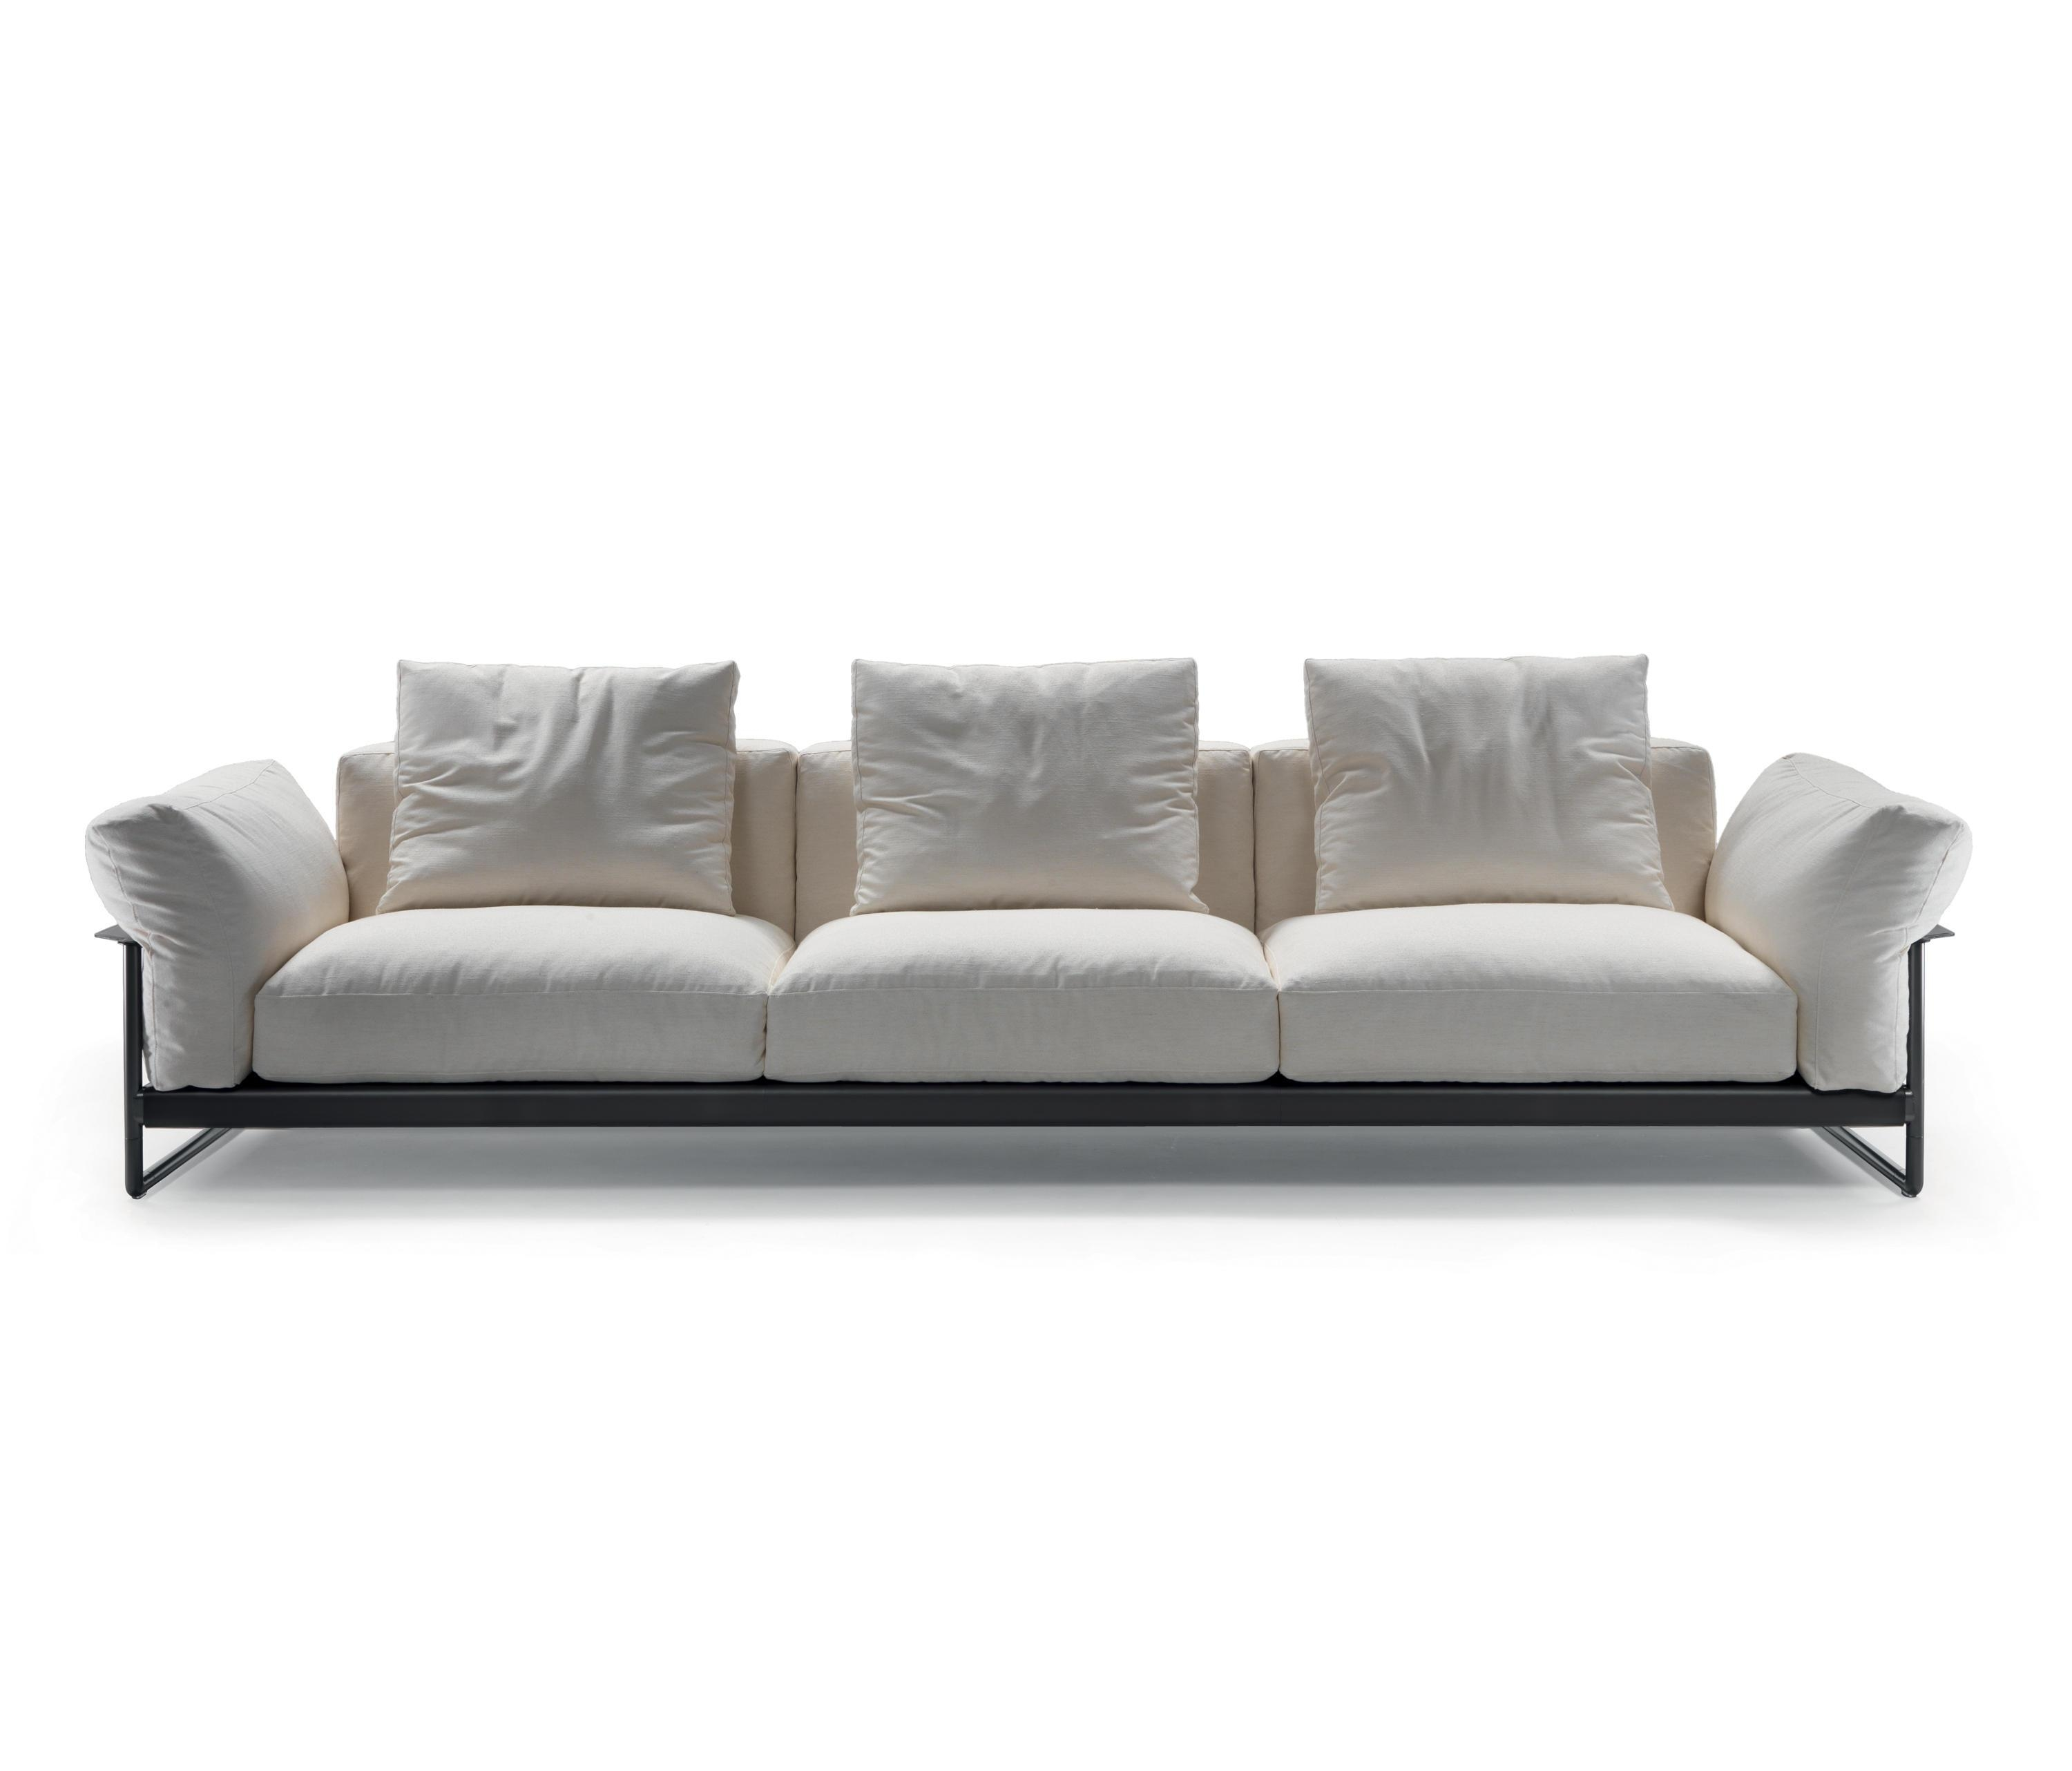 Sofas – Research And Select Flexform Products Online | Architonic In Flexform Sofas (Image 18 of 20)